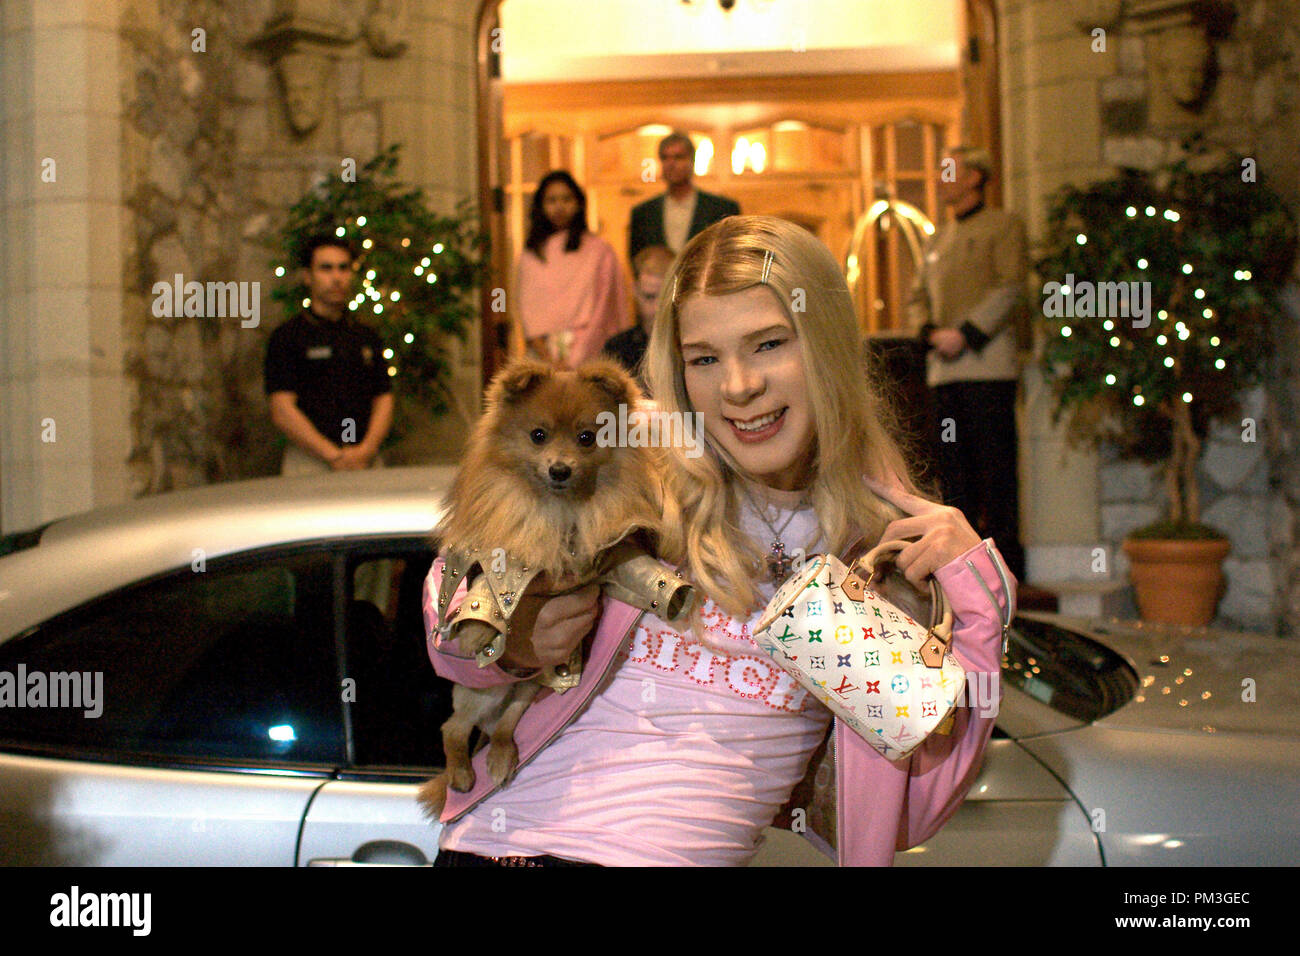 Film Still from 'White Chicks' Marlon Wayans © 2004 Revolutions Studios Photo Credit: Joe Lederer  File Reference # 30735107THA  For Editorial Use Only -  All Rights Reserved - Stock Image